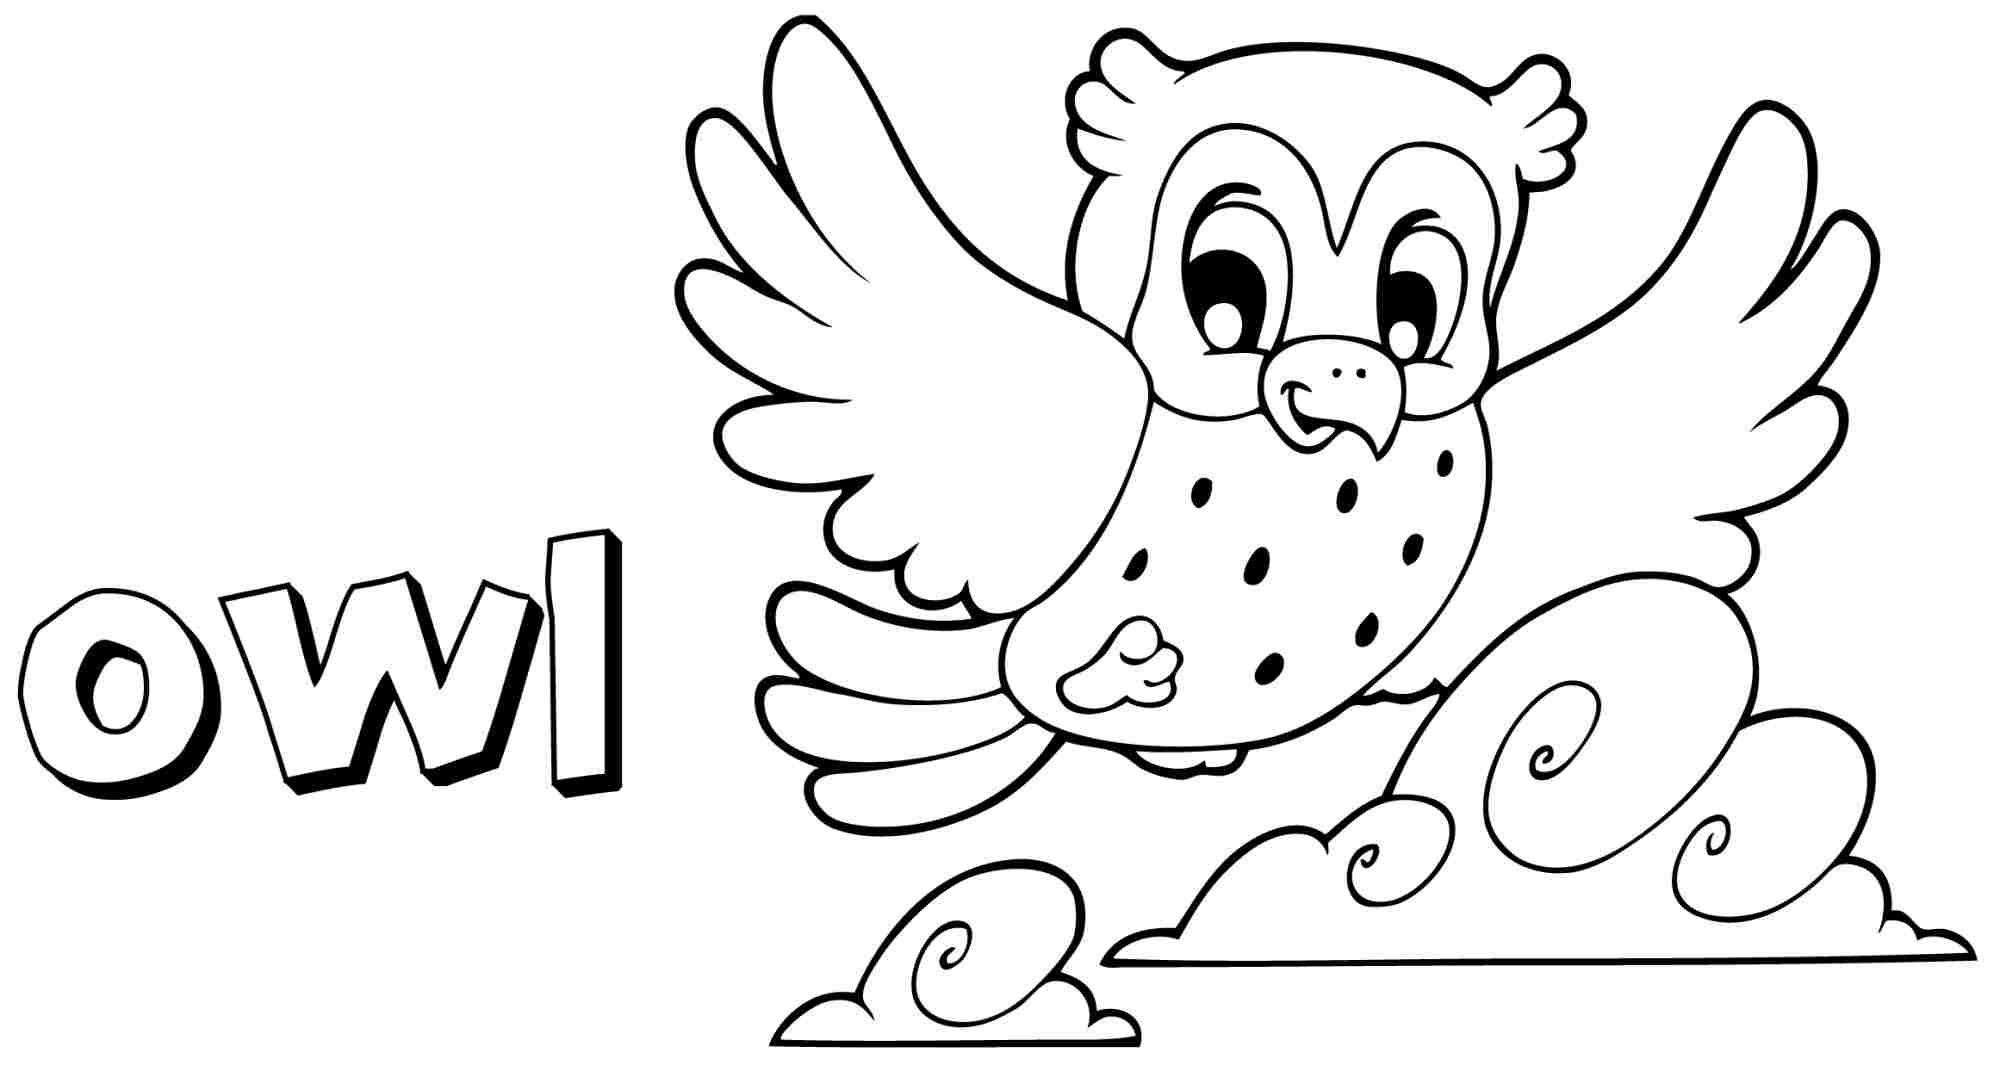 2000x1065 Ba Owl Coloring Pages Newyork Rp Owl Coloring Pages For Kids